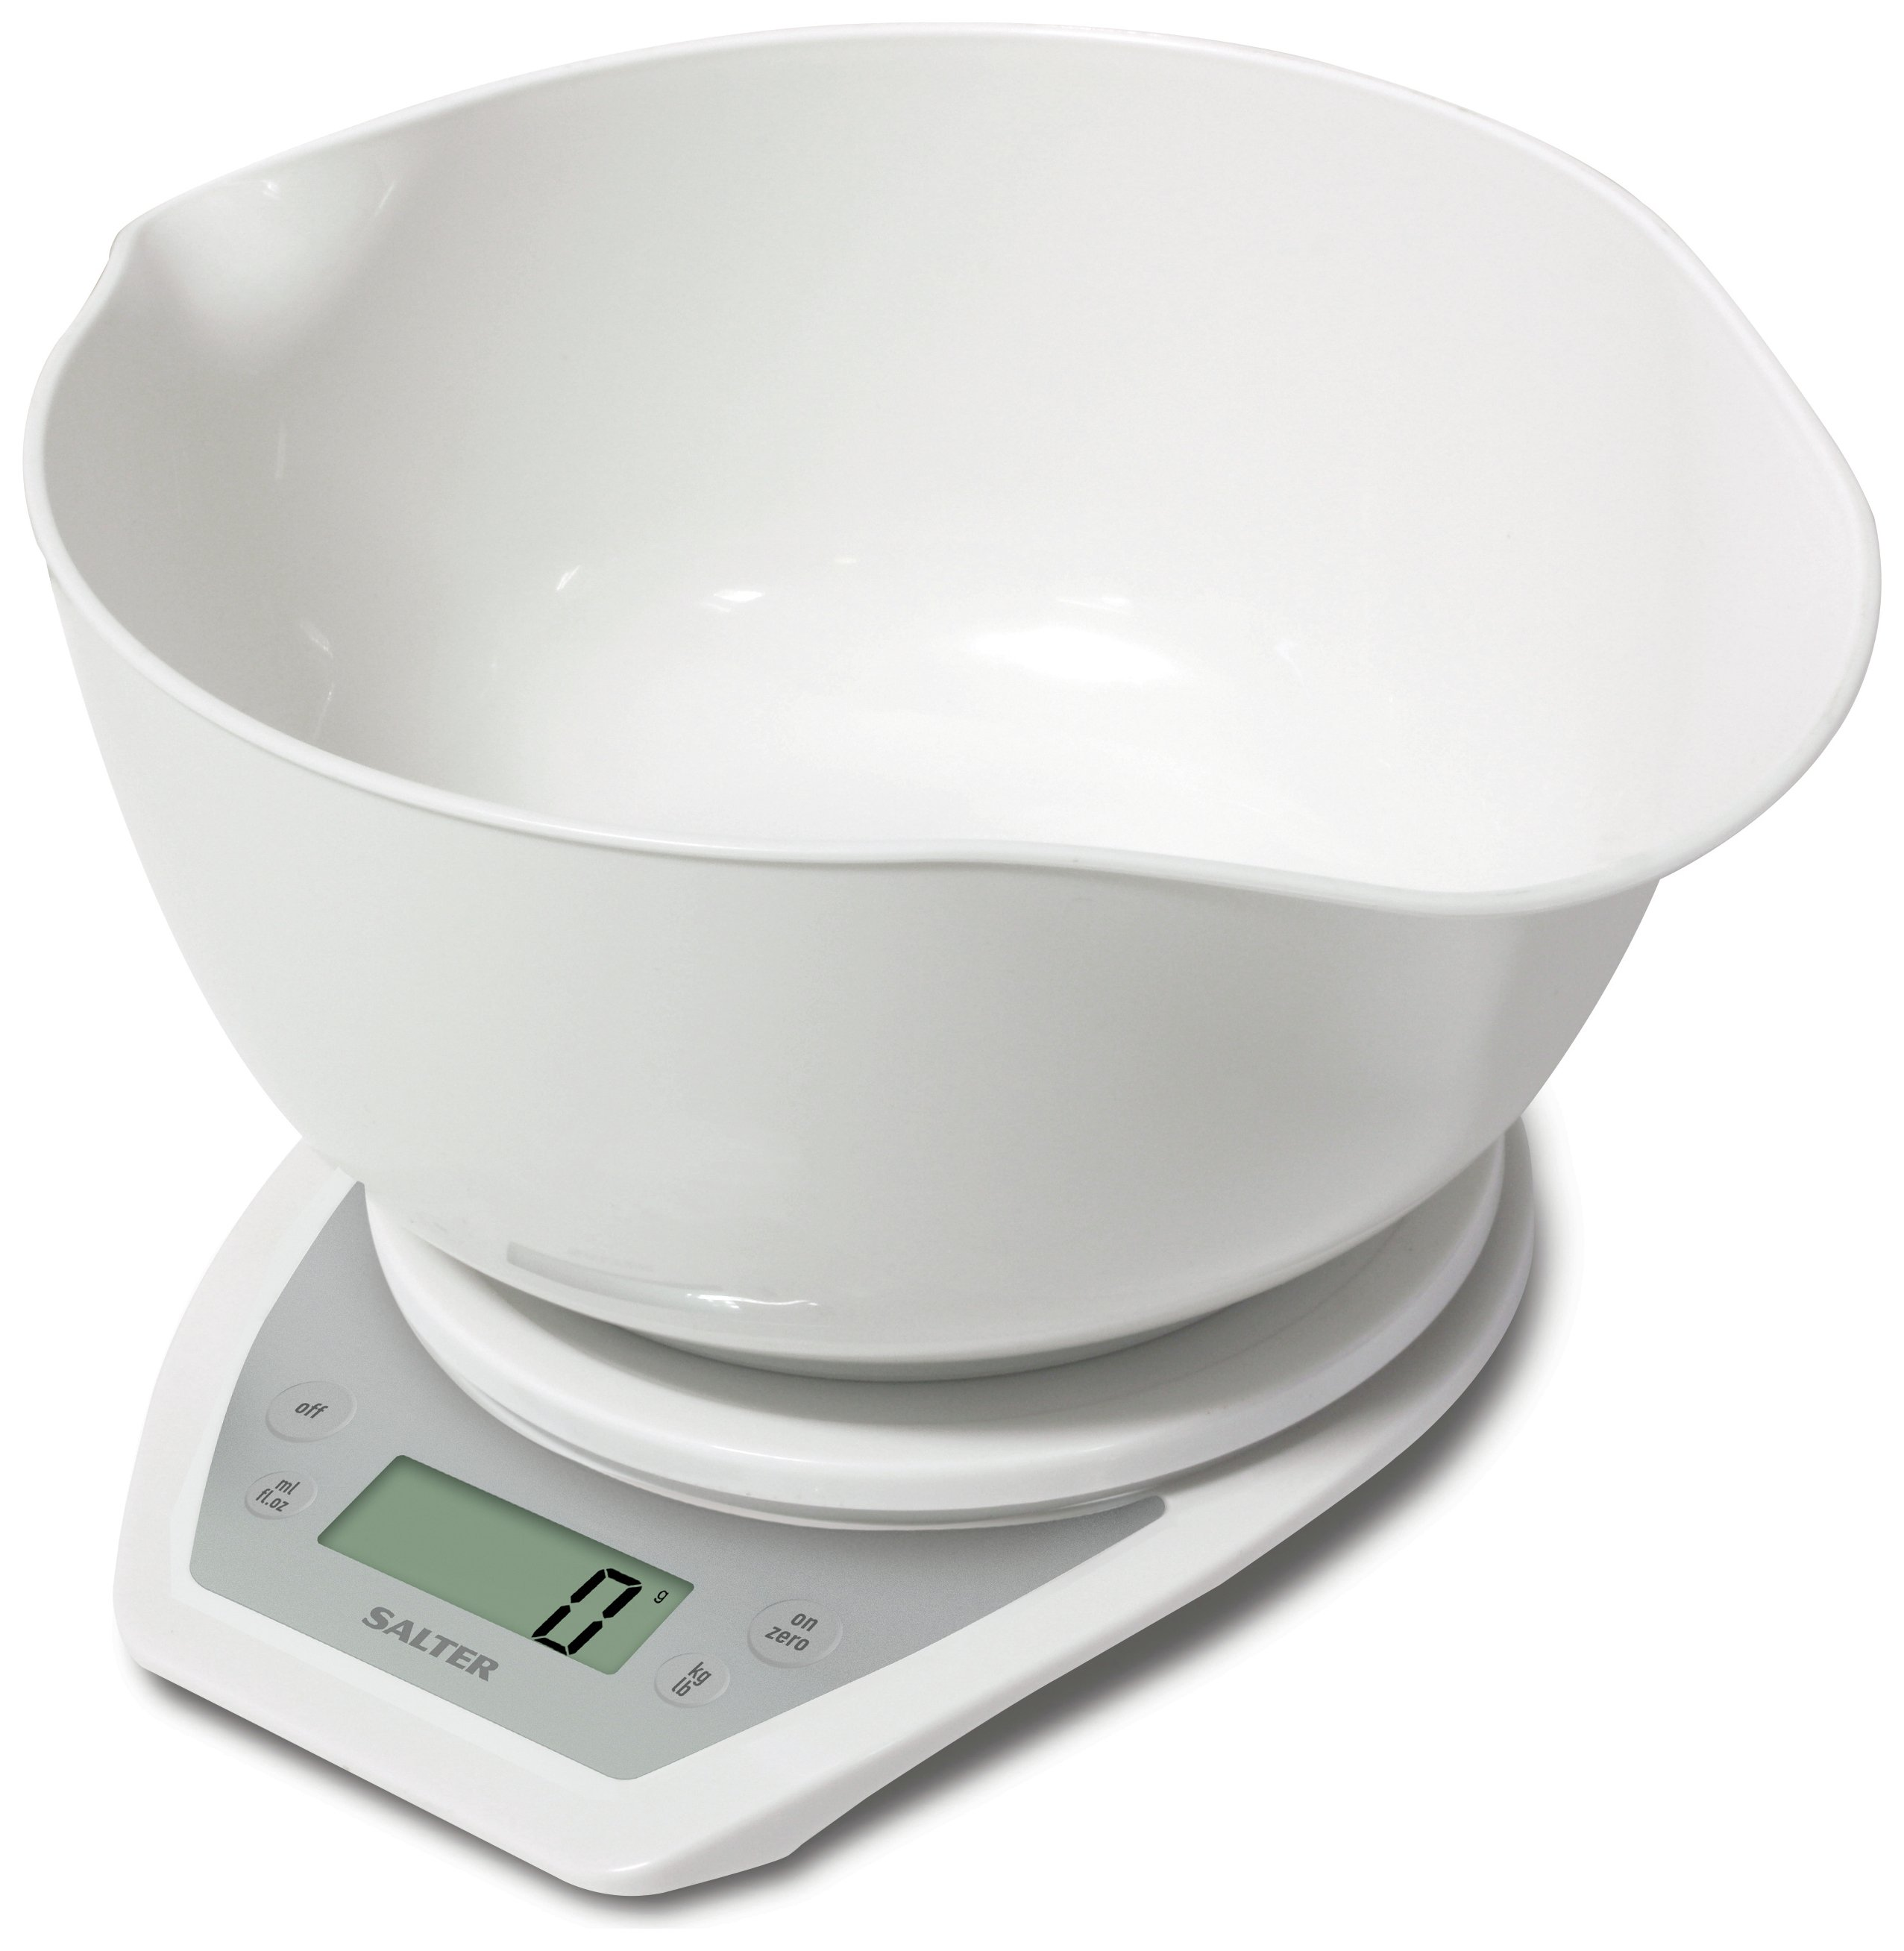 Salter Aquatronic Kitchen Scale and Bowl - White